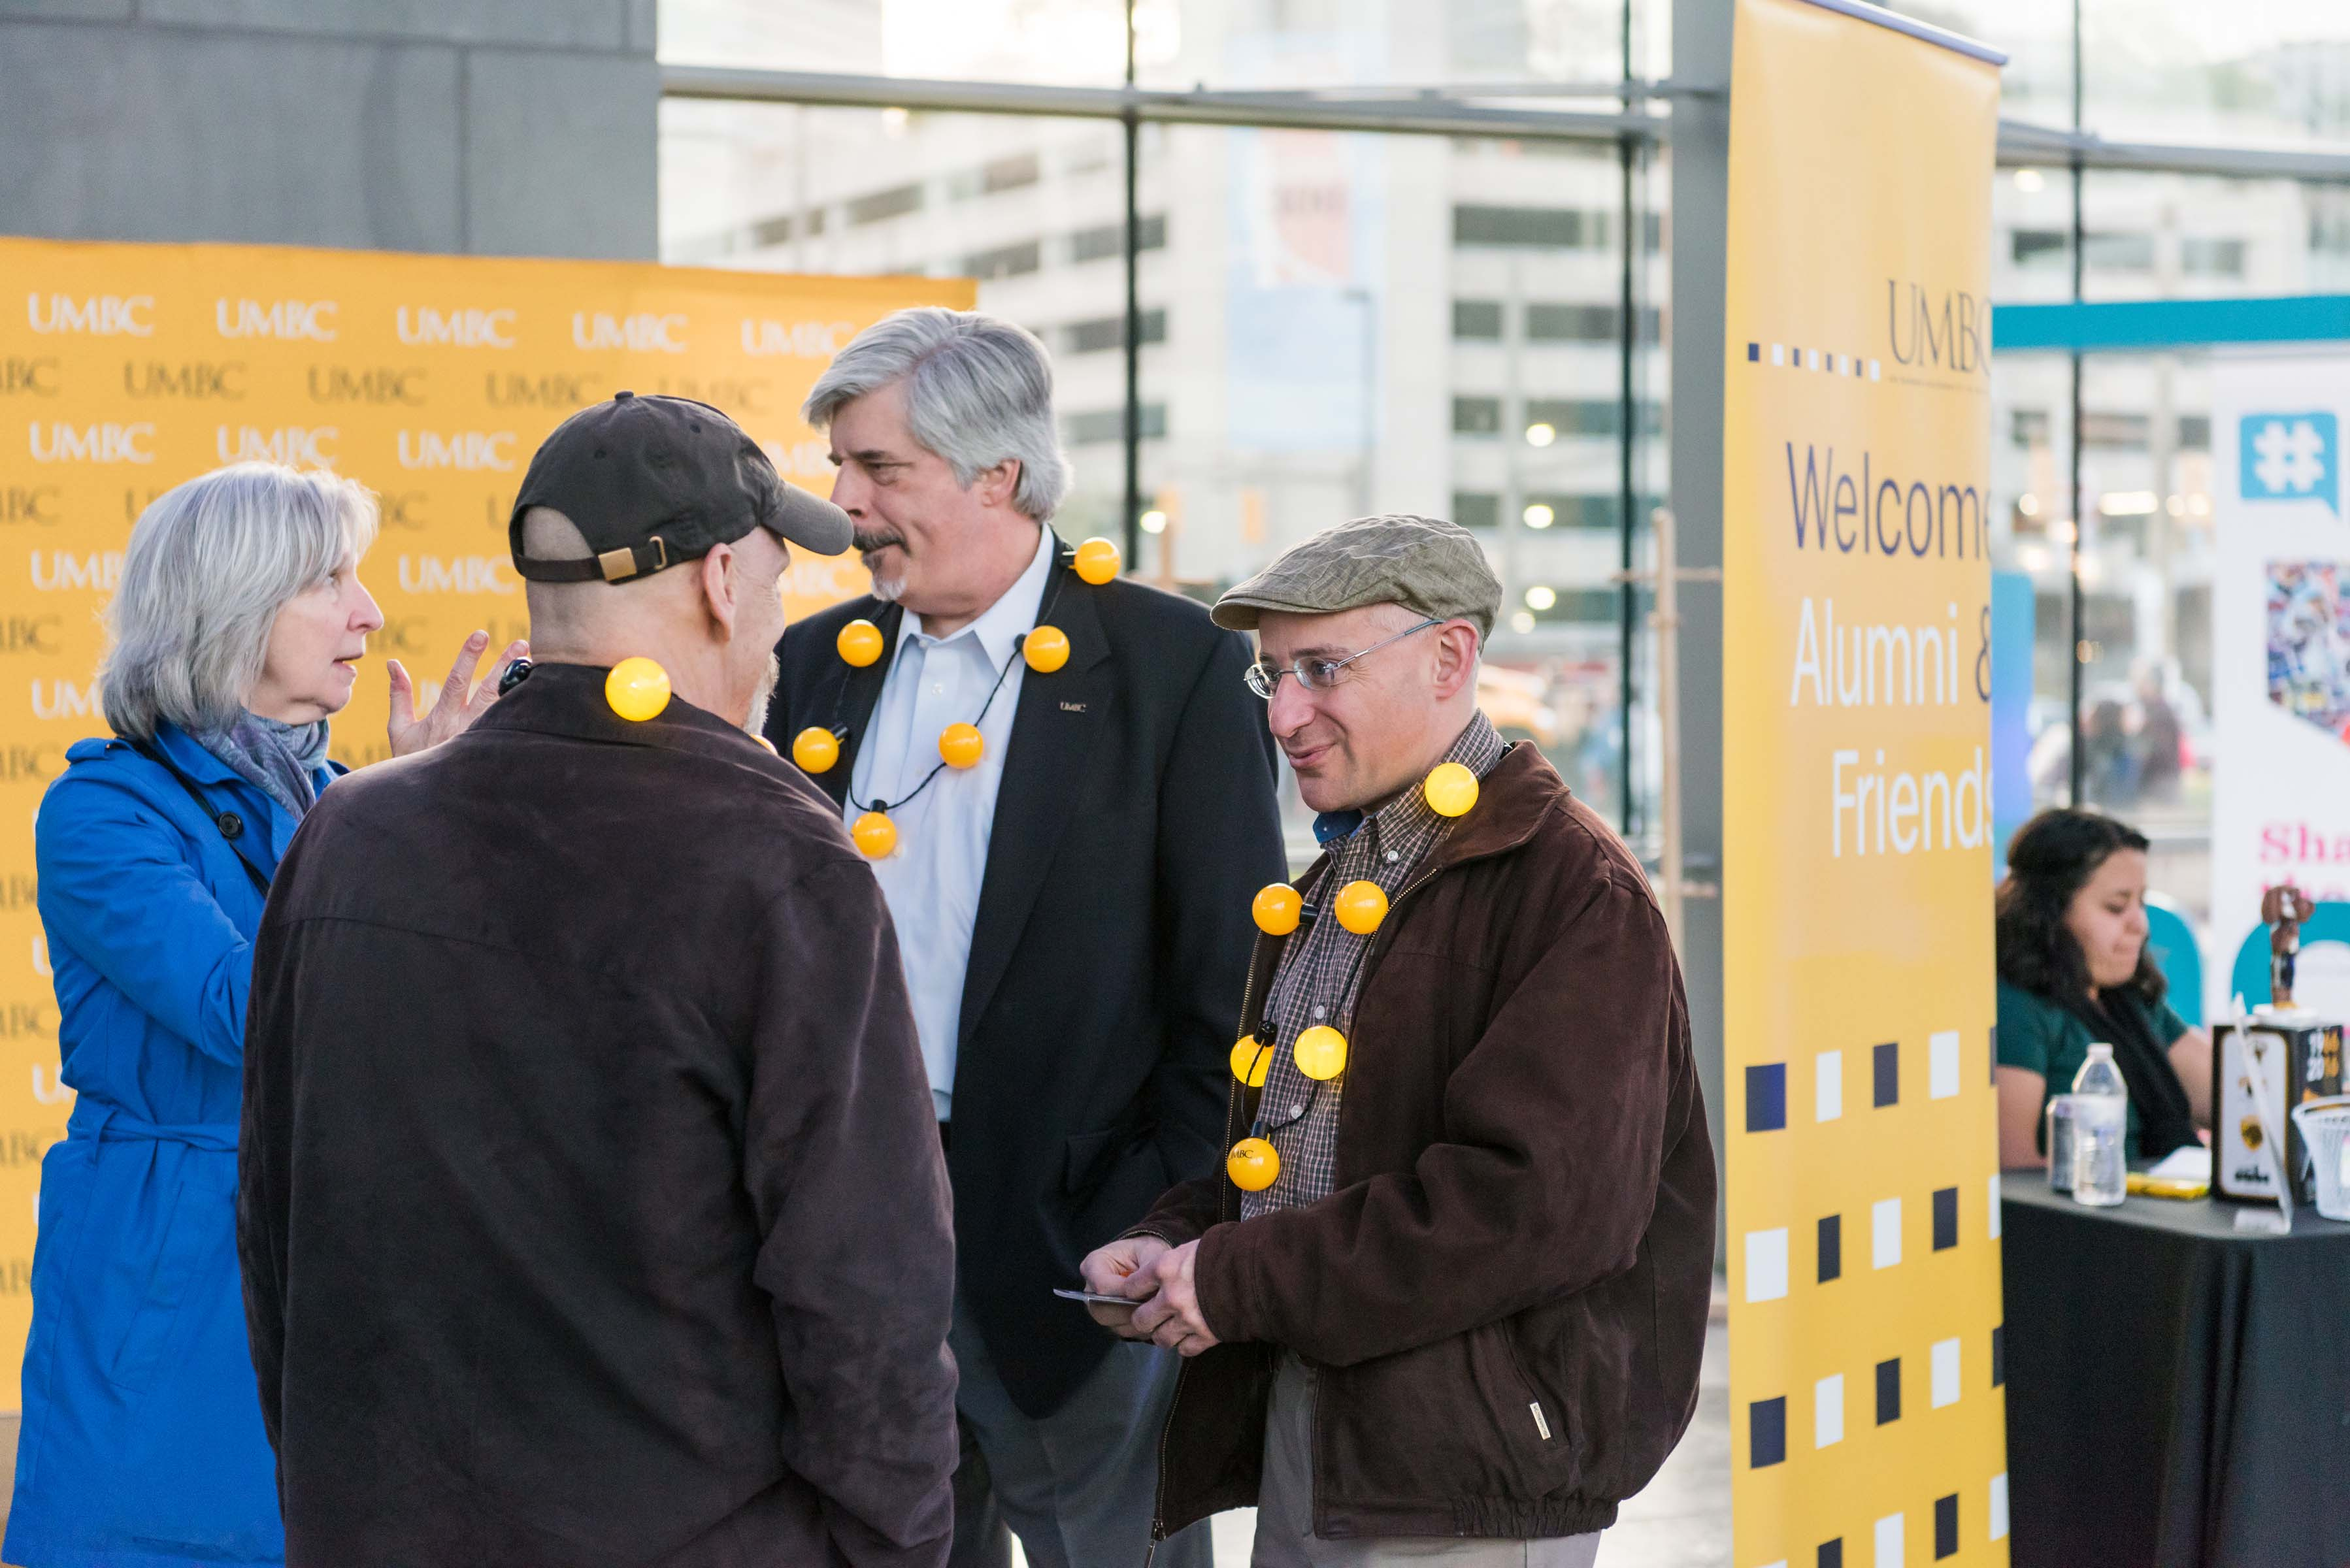 Staff interacting with welcome alumni sign behind them